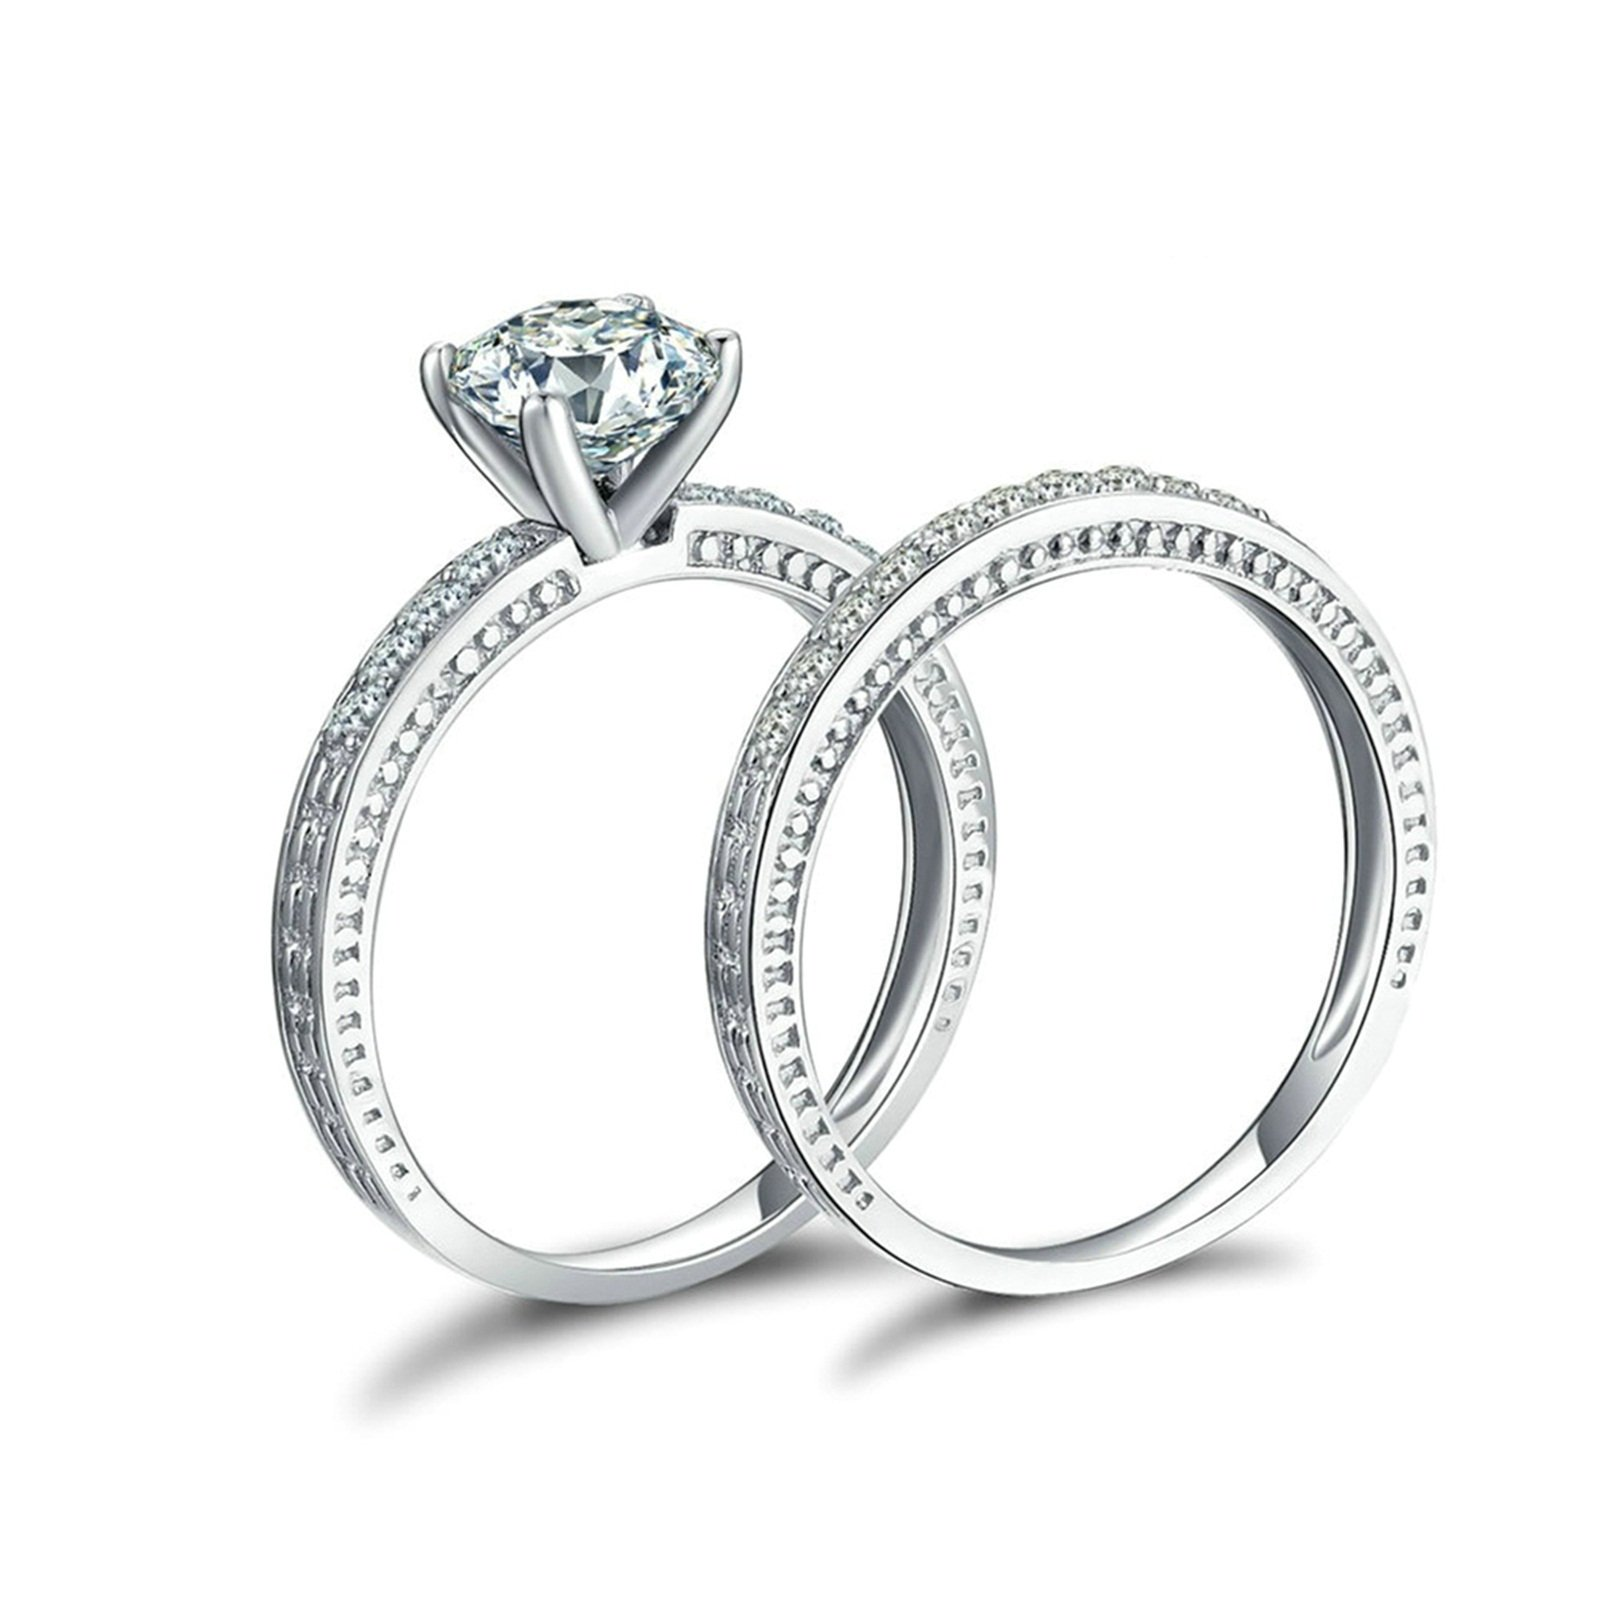 Daesar Wedding Bands His and Hers 4-Prong Setting Round Cut Crystal Ring Set Ring Size 6